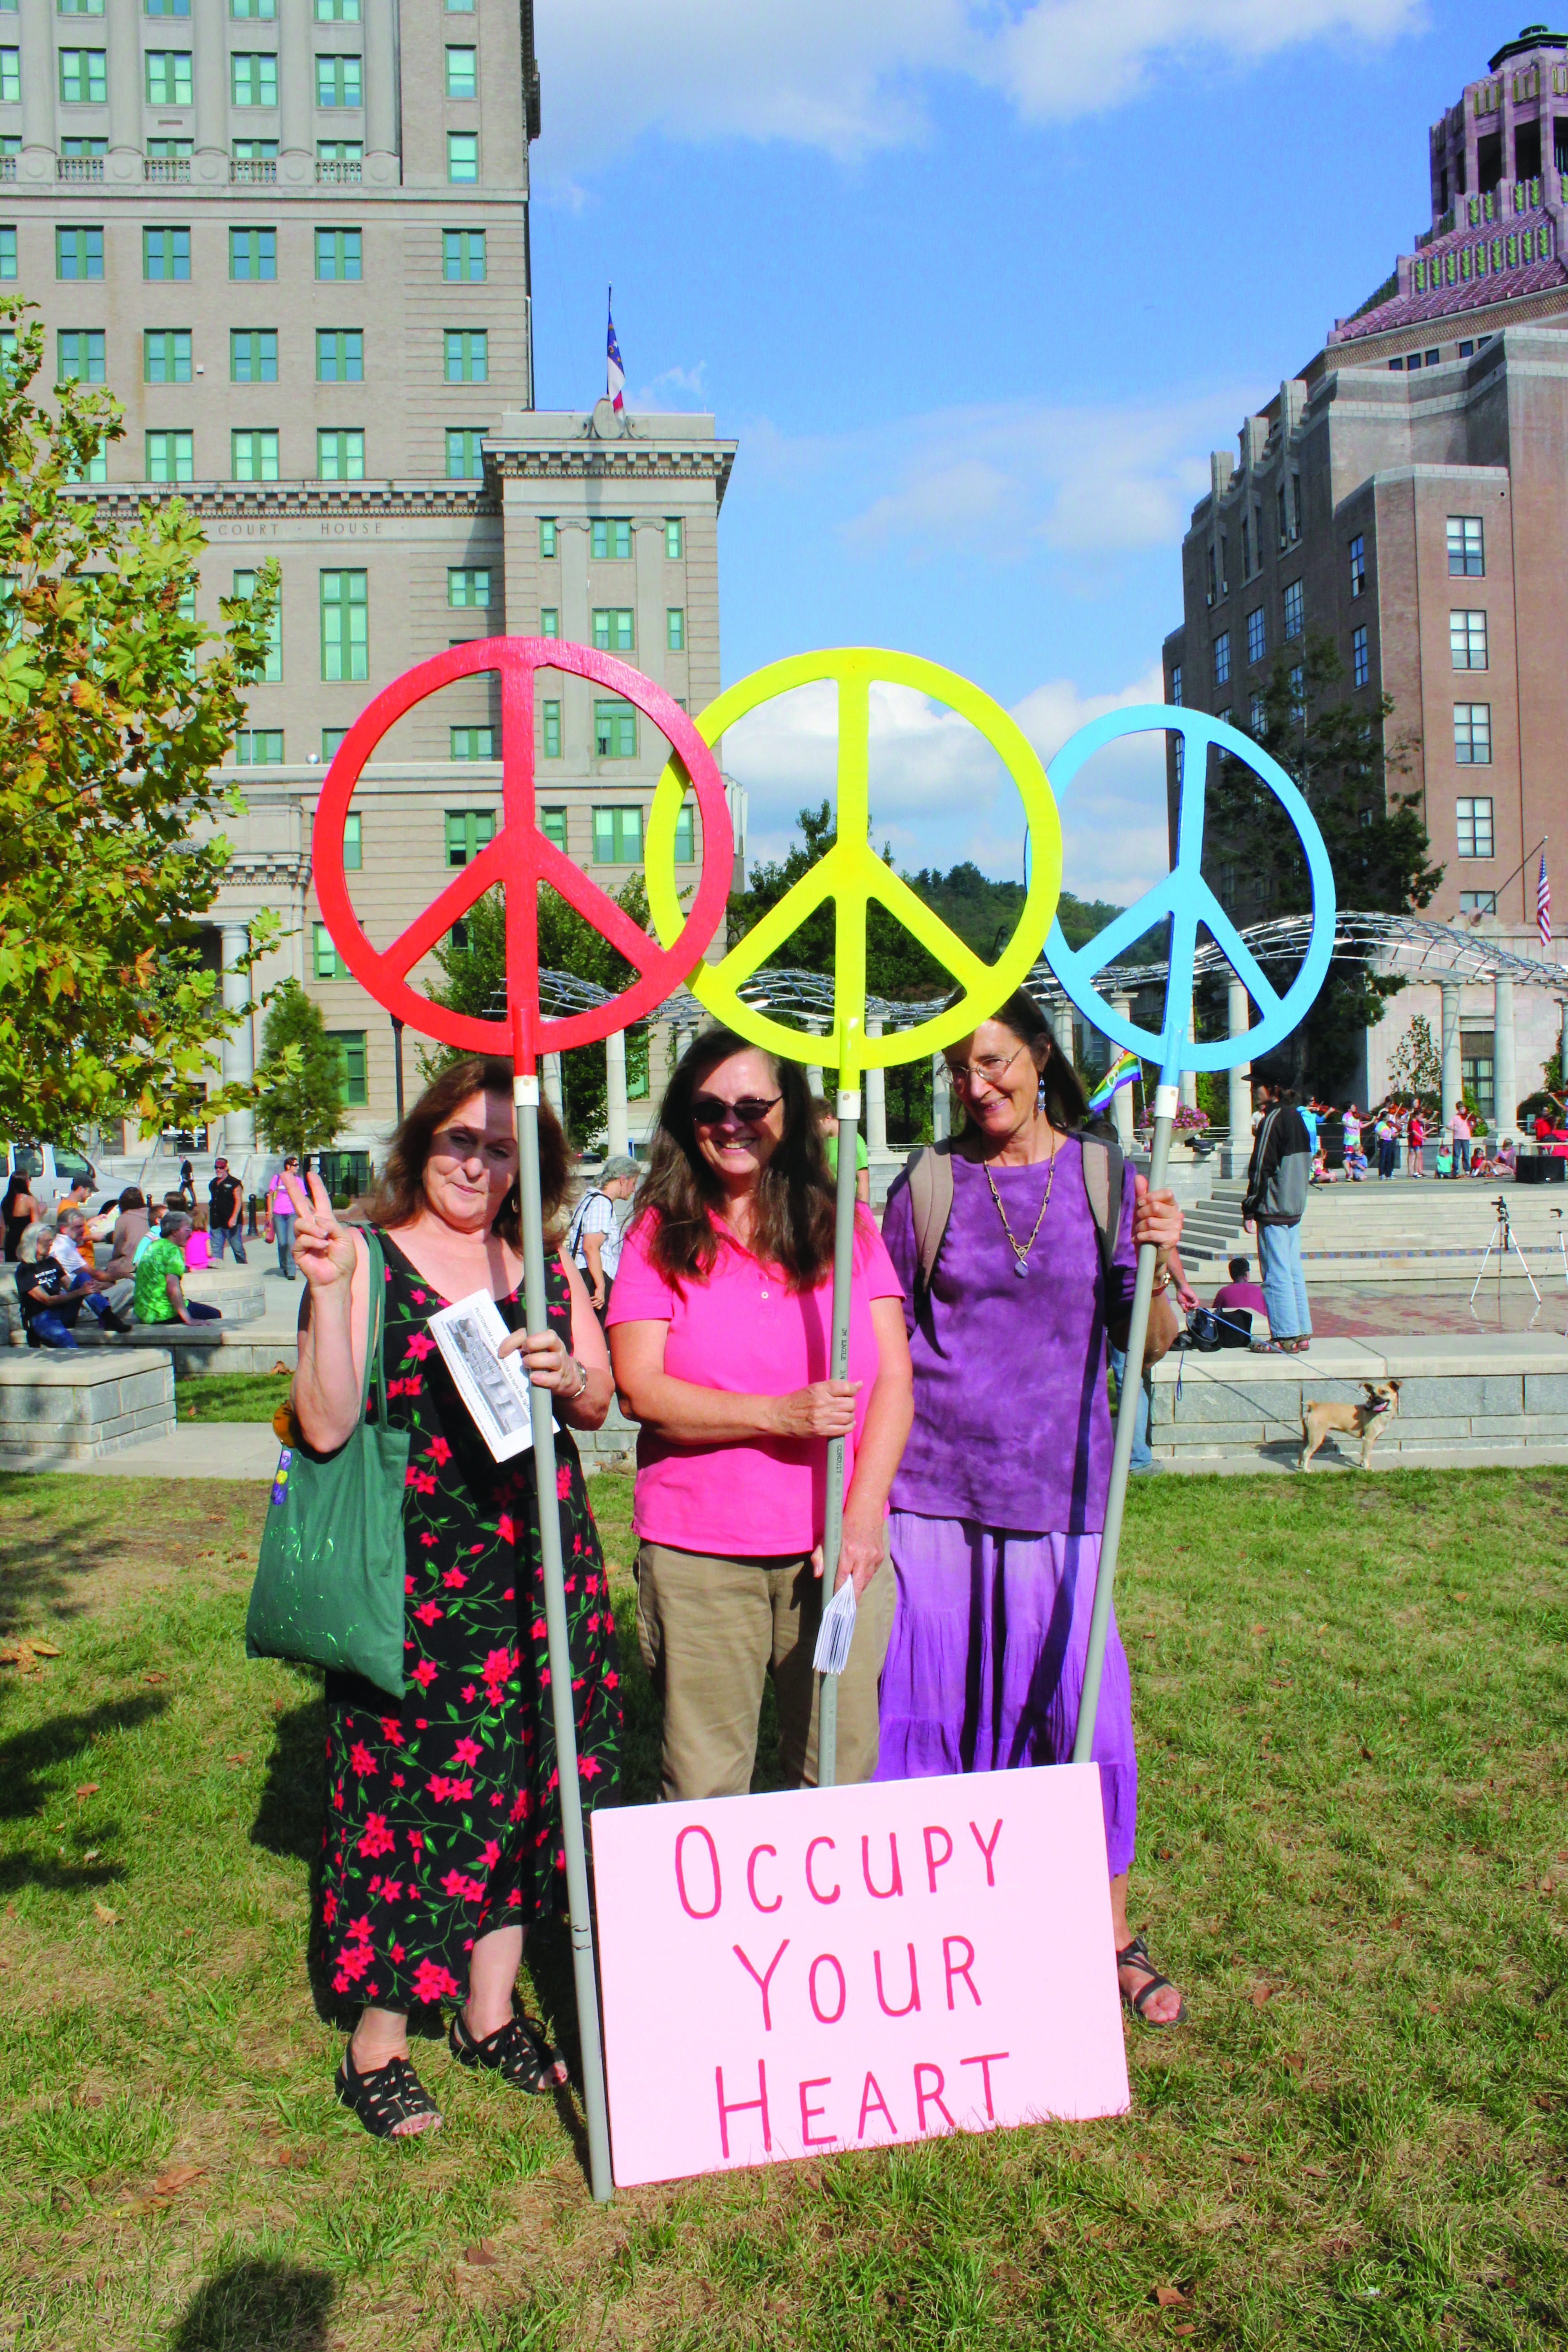 Debralee Williams, left, Laura Sorensen, center, and Cathy Holt, right, protest for peace at the International Peace Day celebration, on Friday, Sept. 21, 2012.